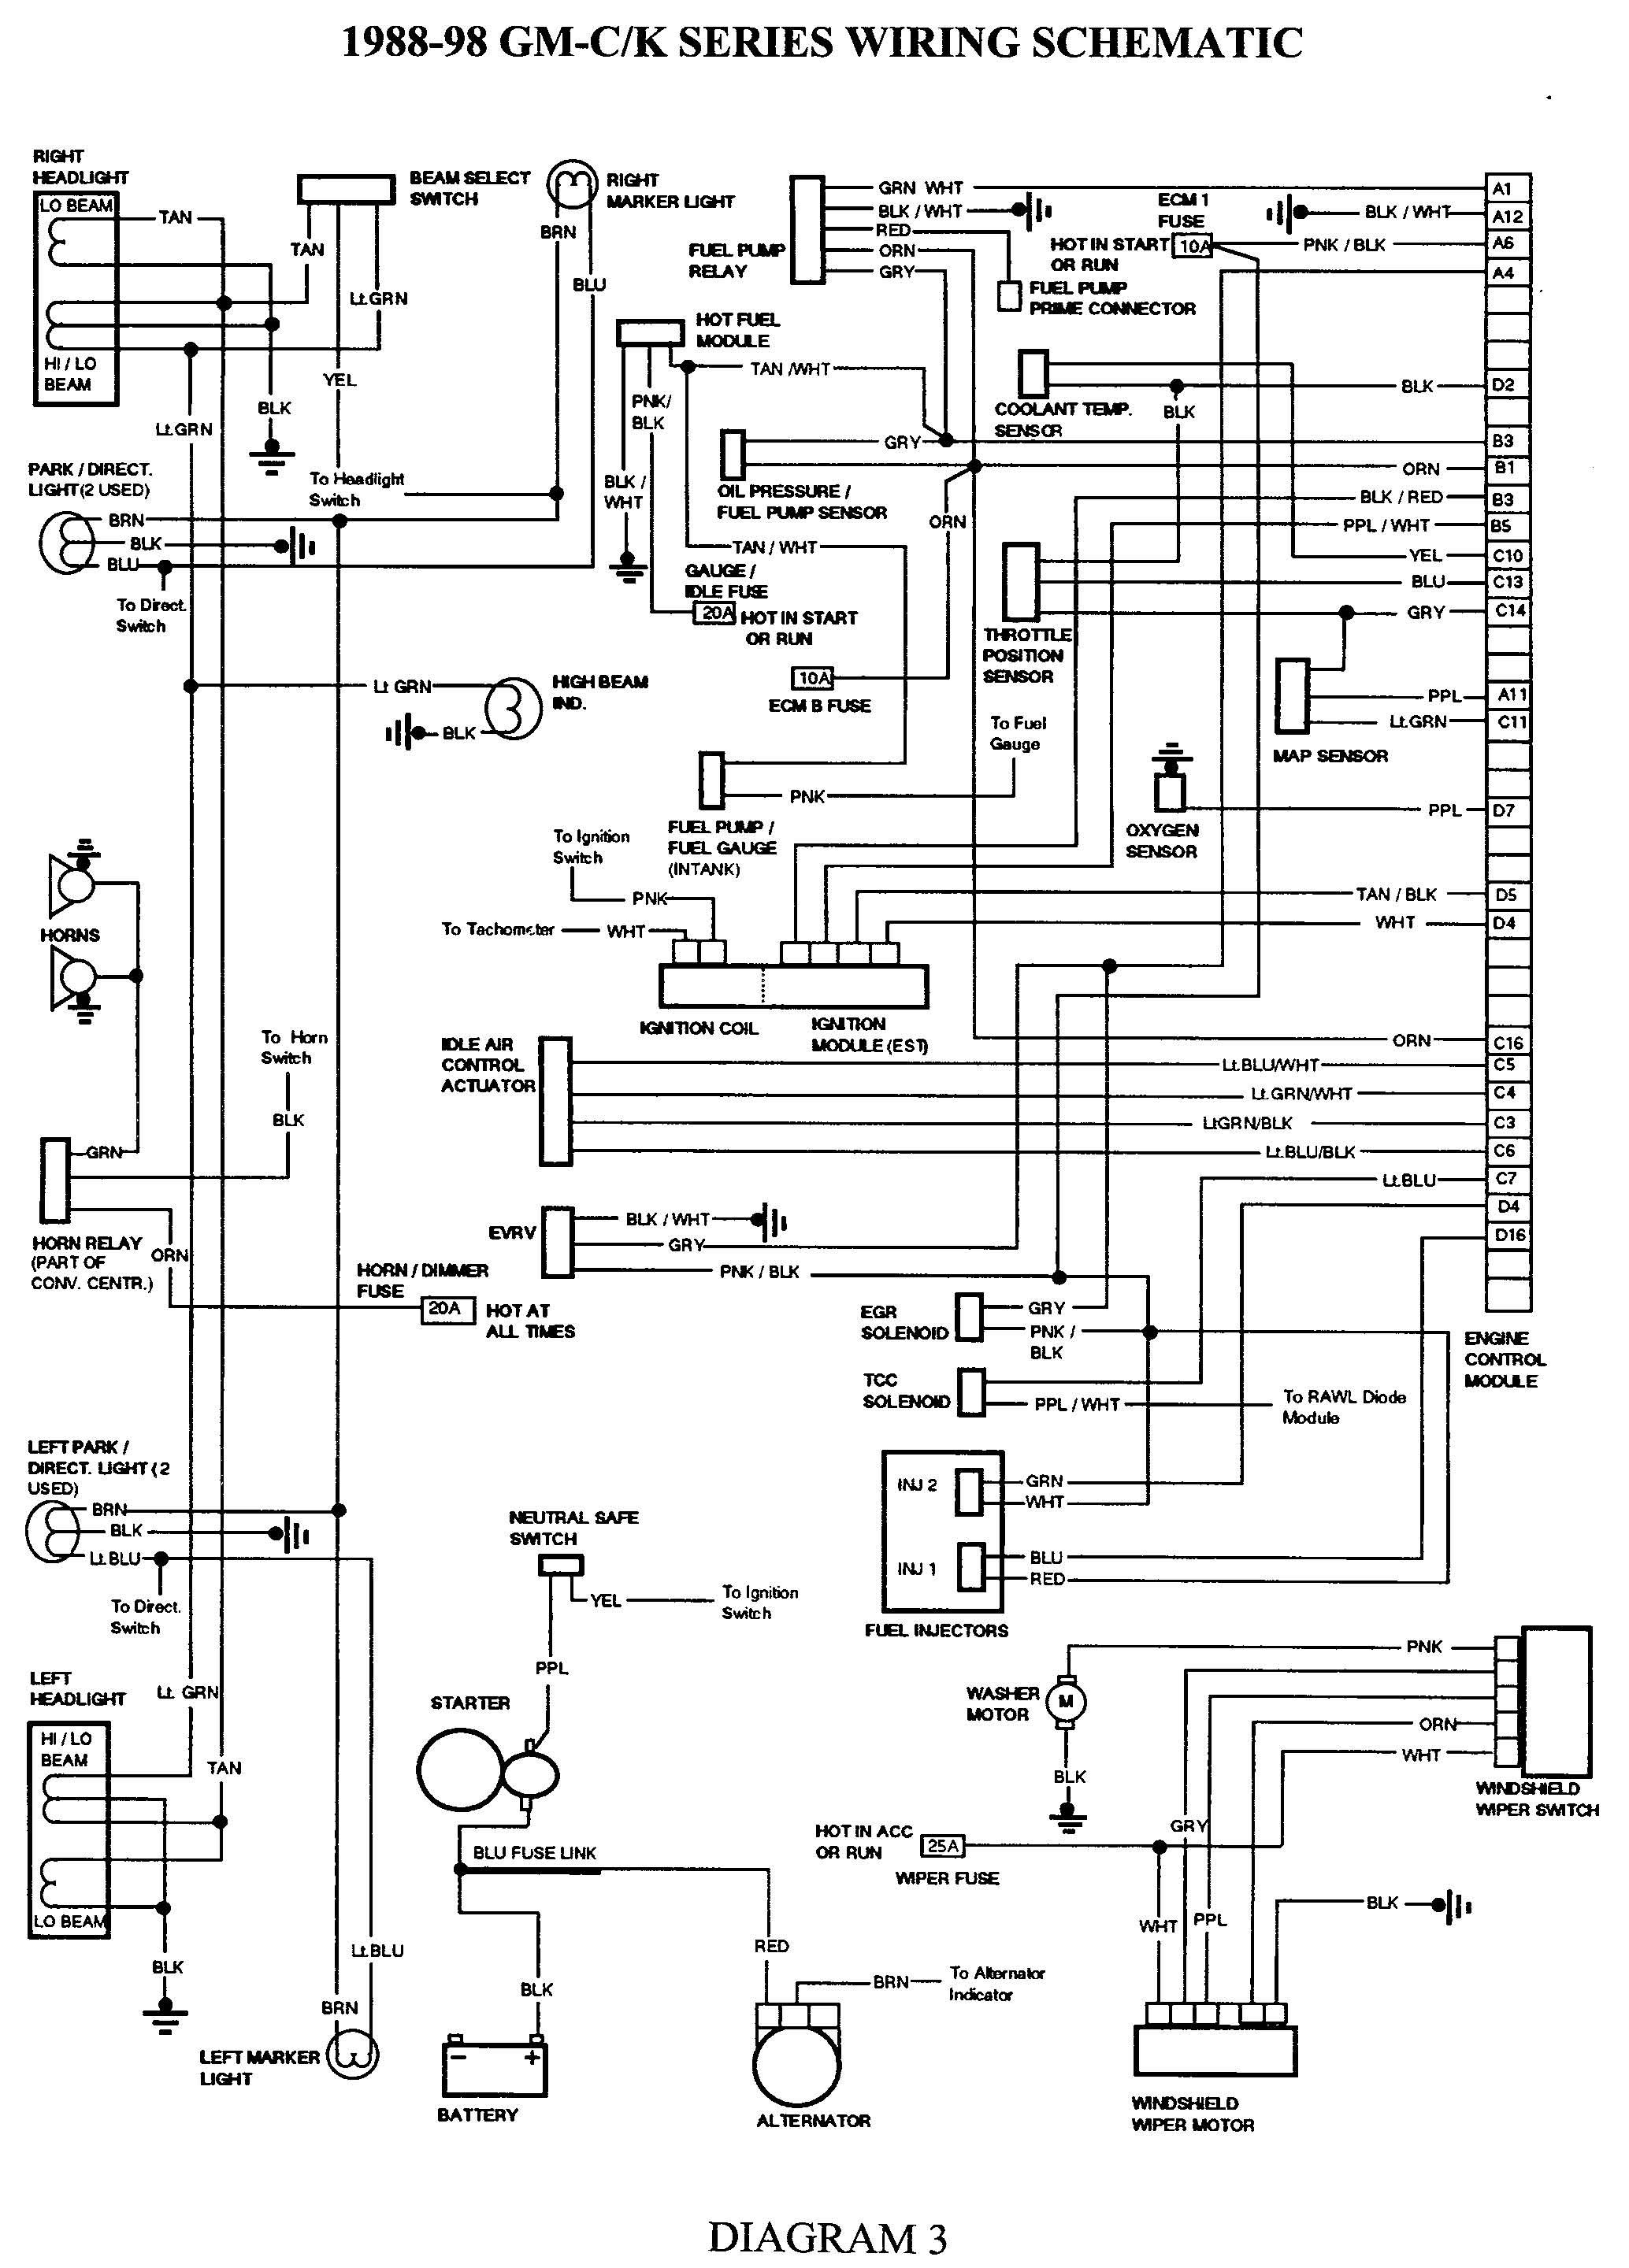 b2f2e5dbdc07dada83ef514f6d4ce3d4 gmc truck wiring diagrams on gm wiring harness diagram 88 98 kc gmc truck electrical wiring diagrams at bayanpartner.co